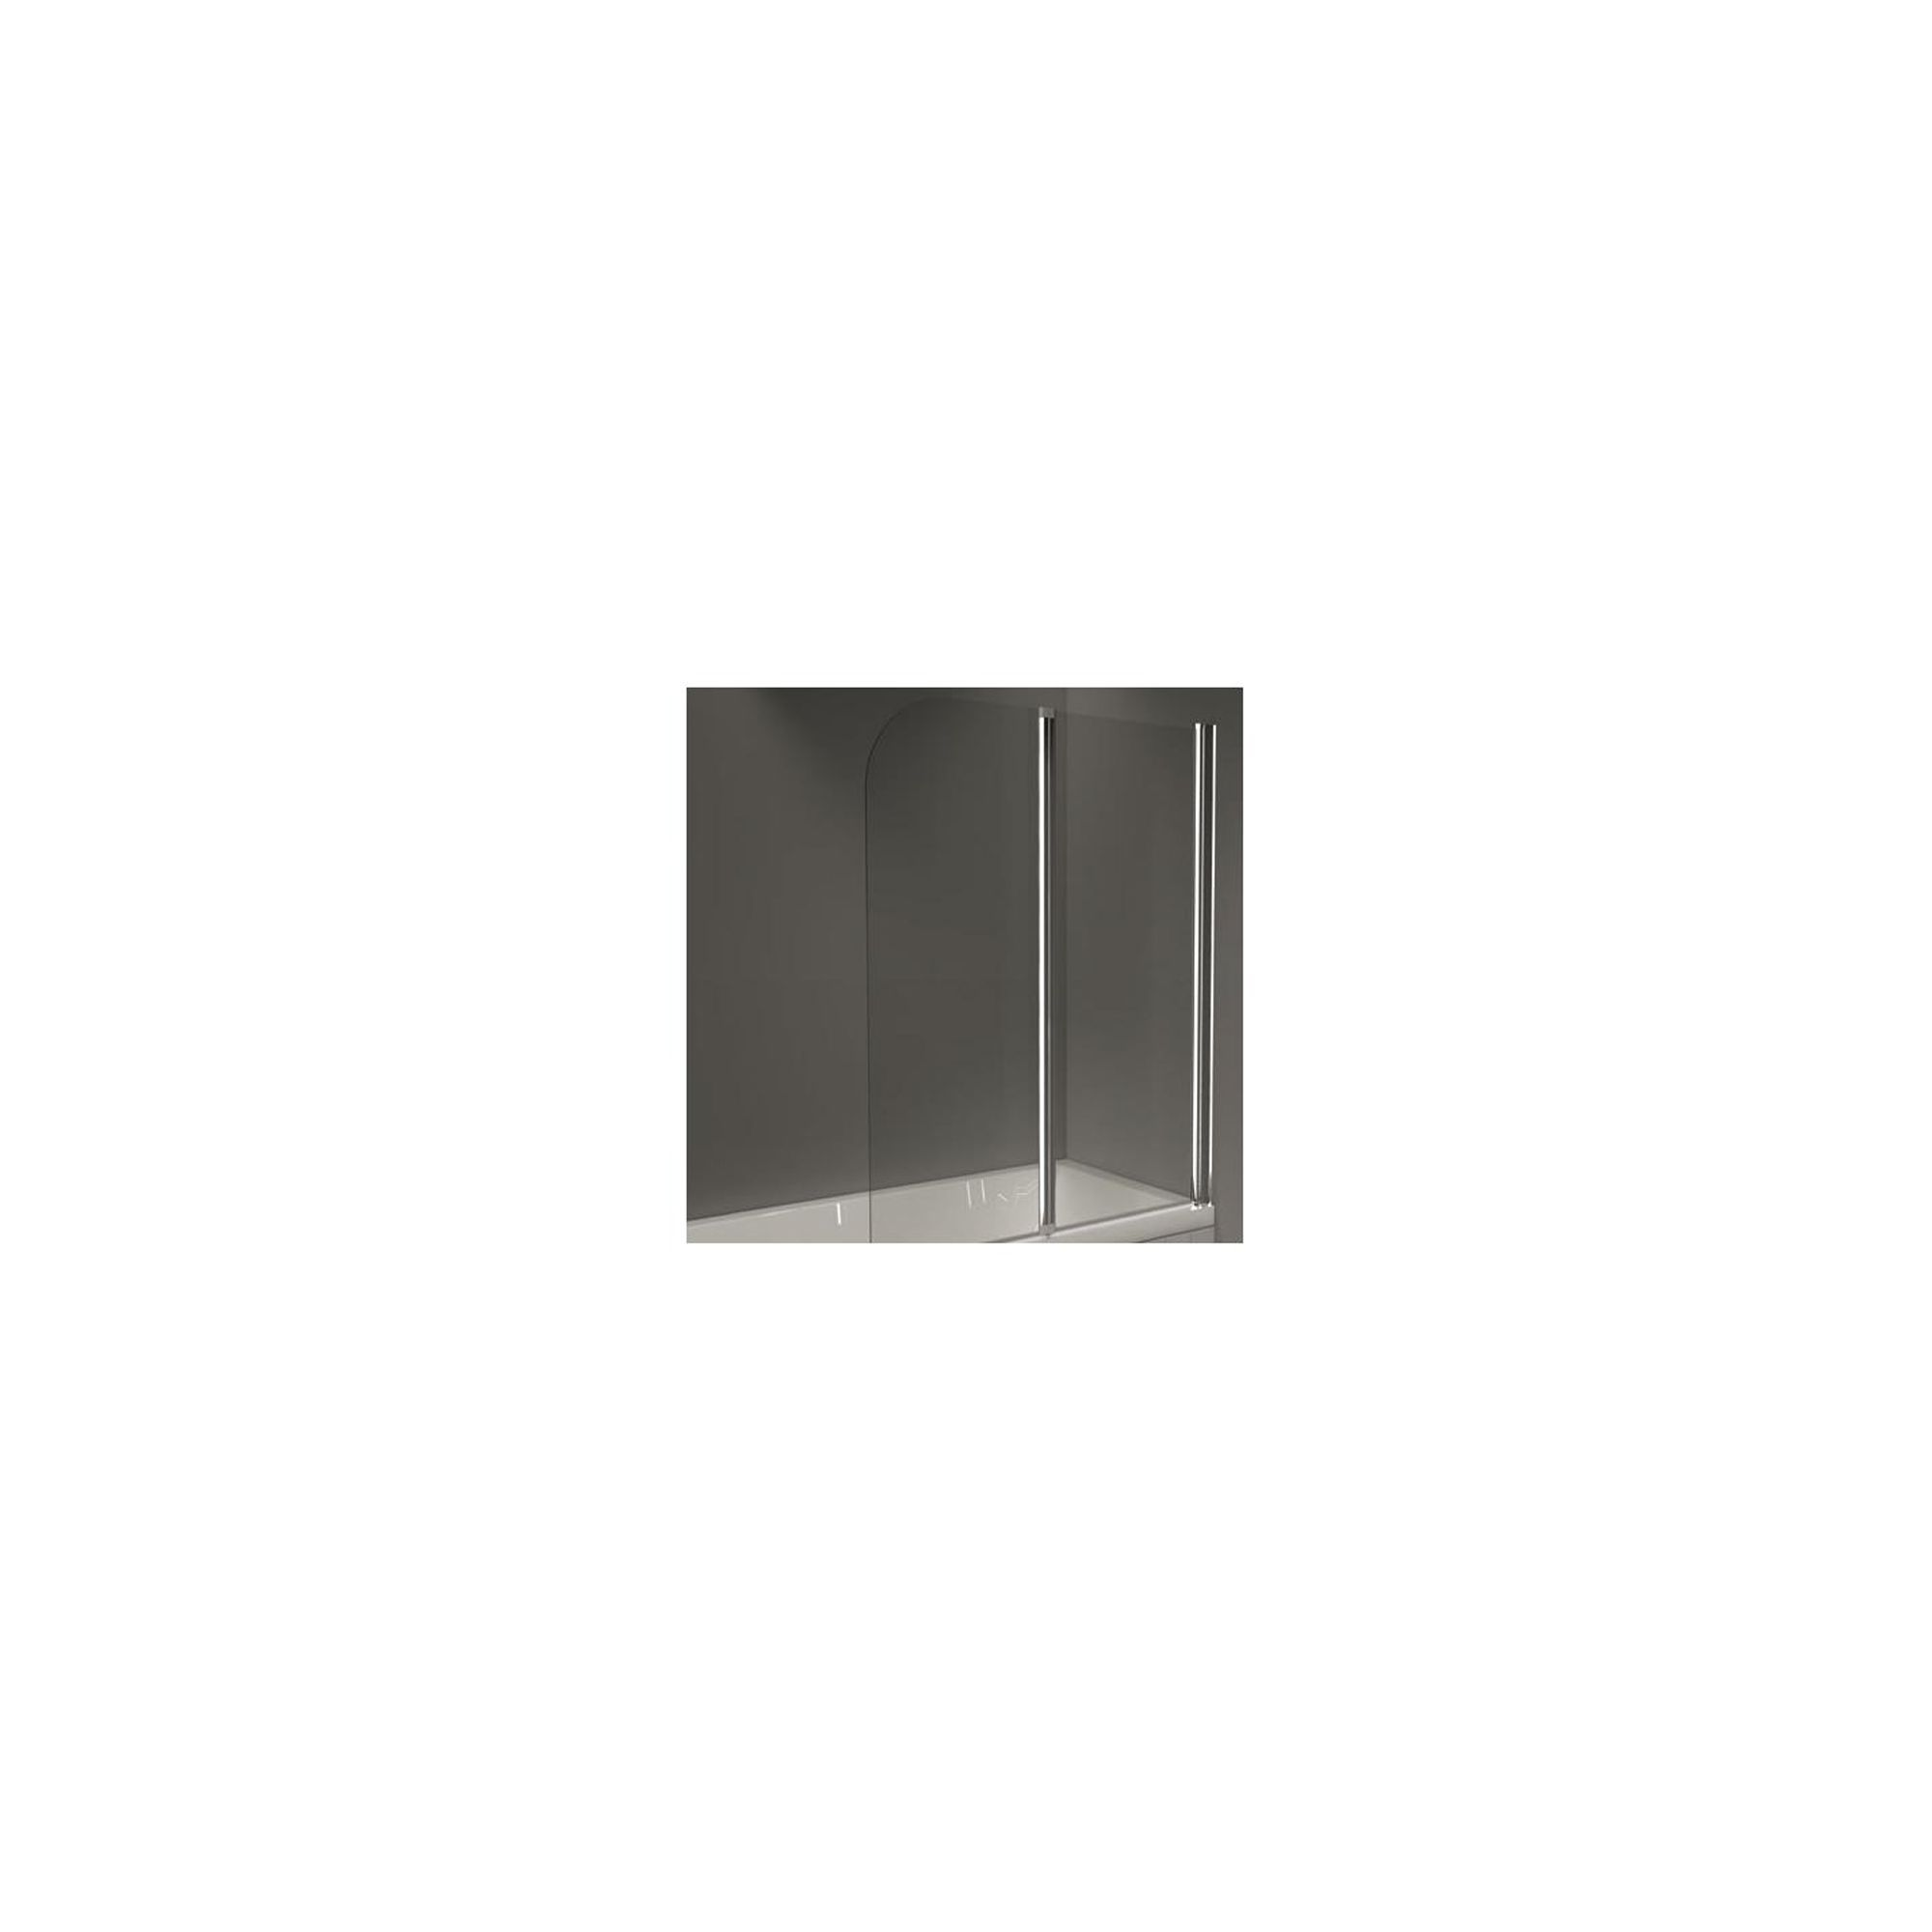 Merlyn OBS Double Folding Round Top Bath Screen, 1500mm High x 1200mm Wide, Right Handed, 6mm Glass at Tesco Direct